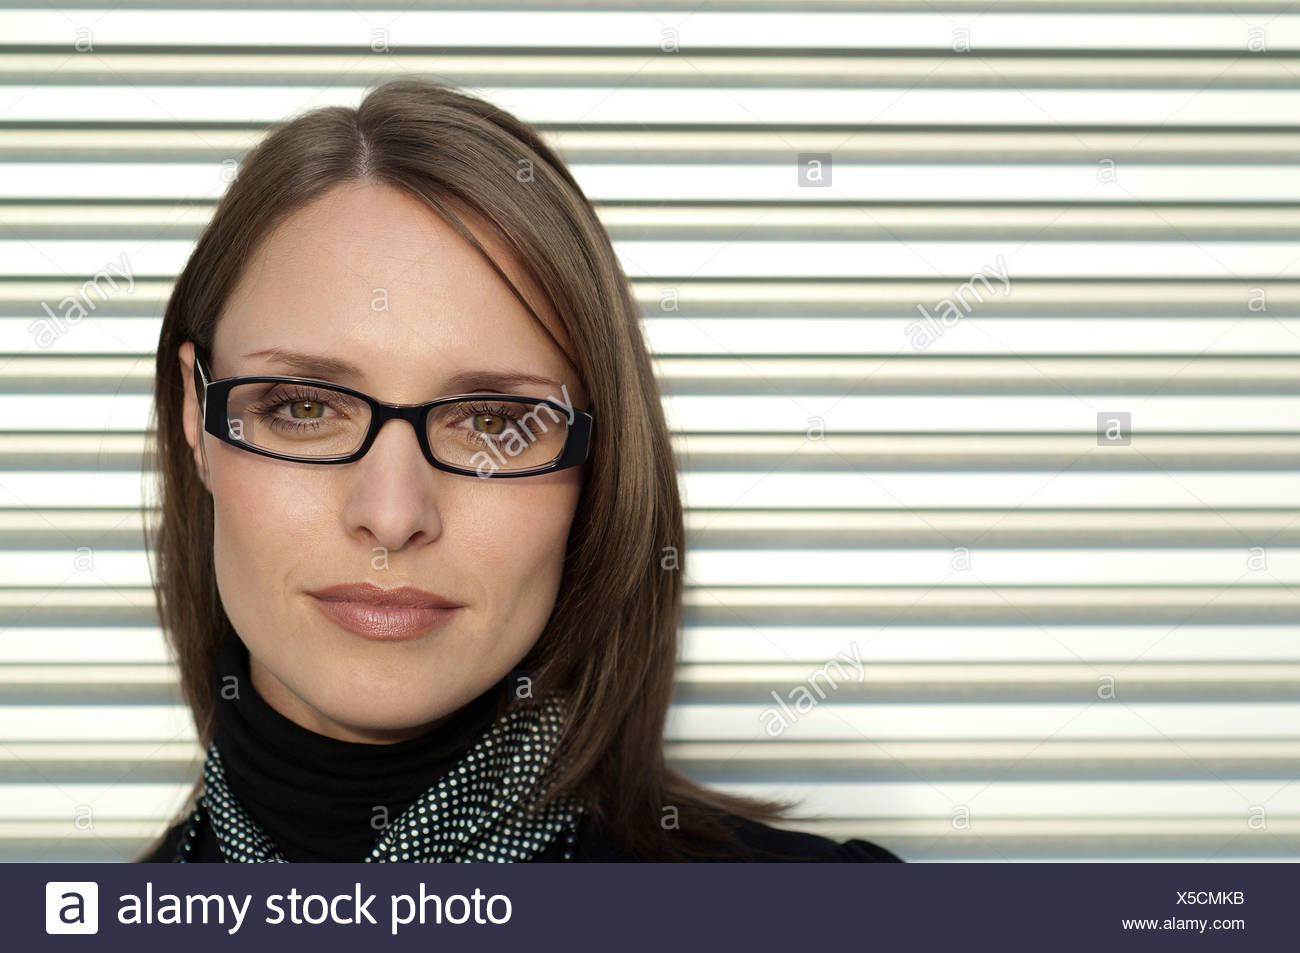 Portrait of a woman against shutters - Stock Image